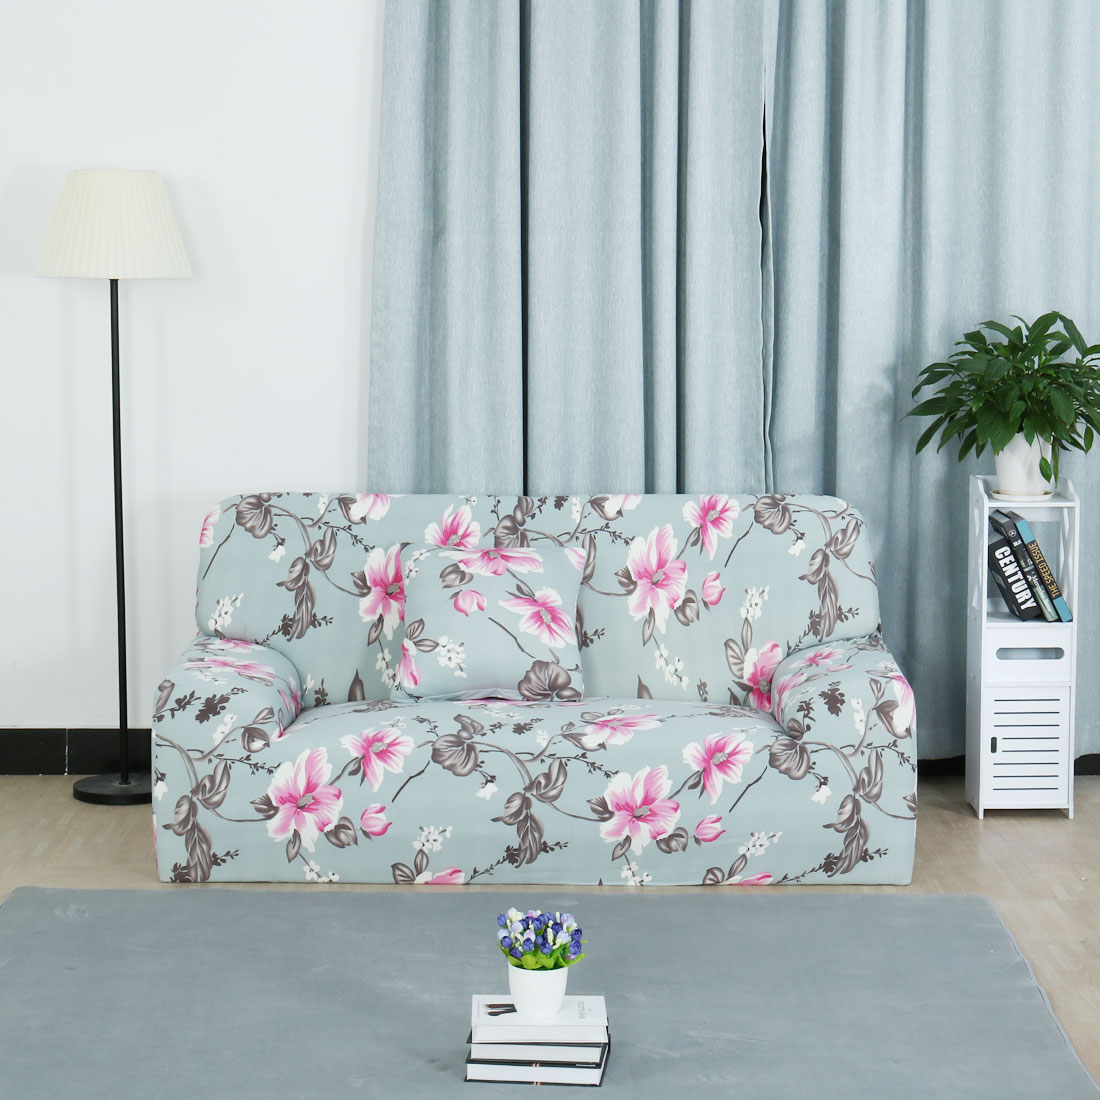 Piccocasa 3 Seats Couch Sofa Covers Slipcovers Printed